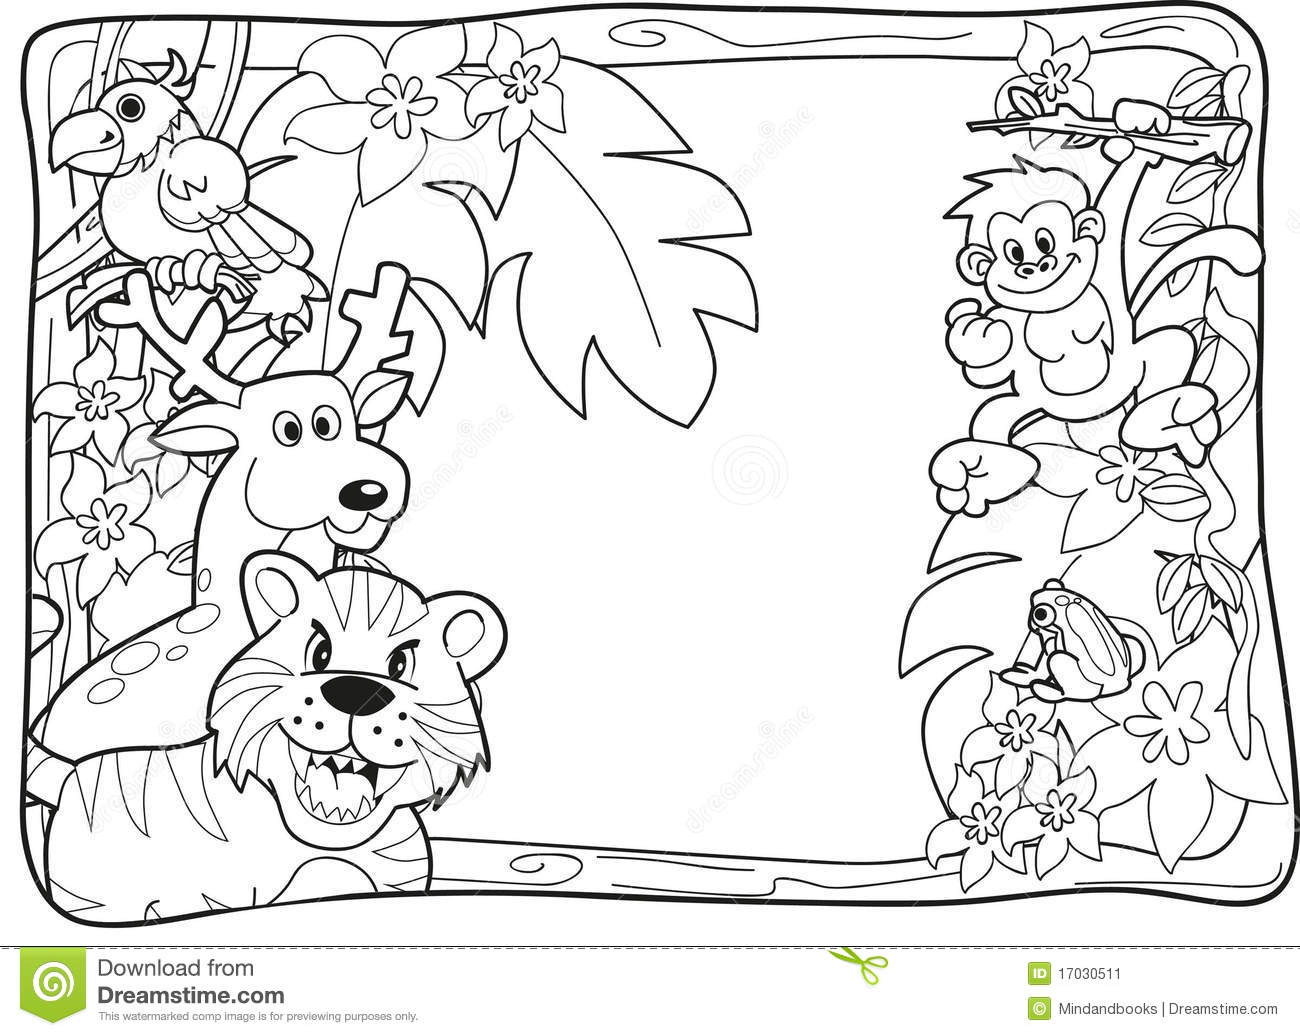 safari animals coloring pages - photo#25